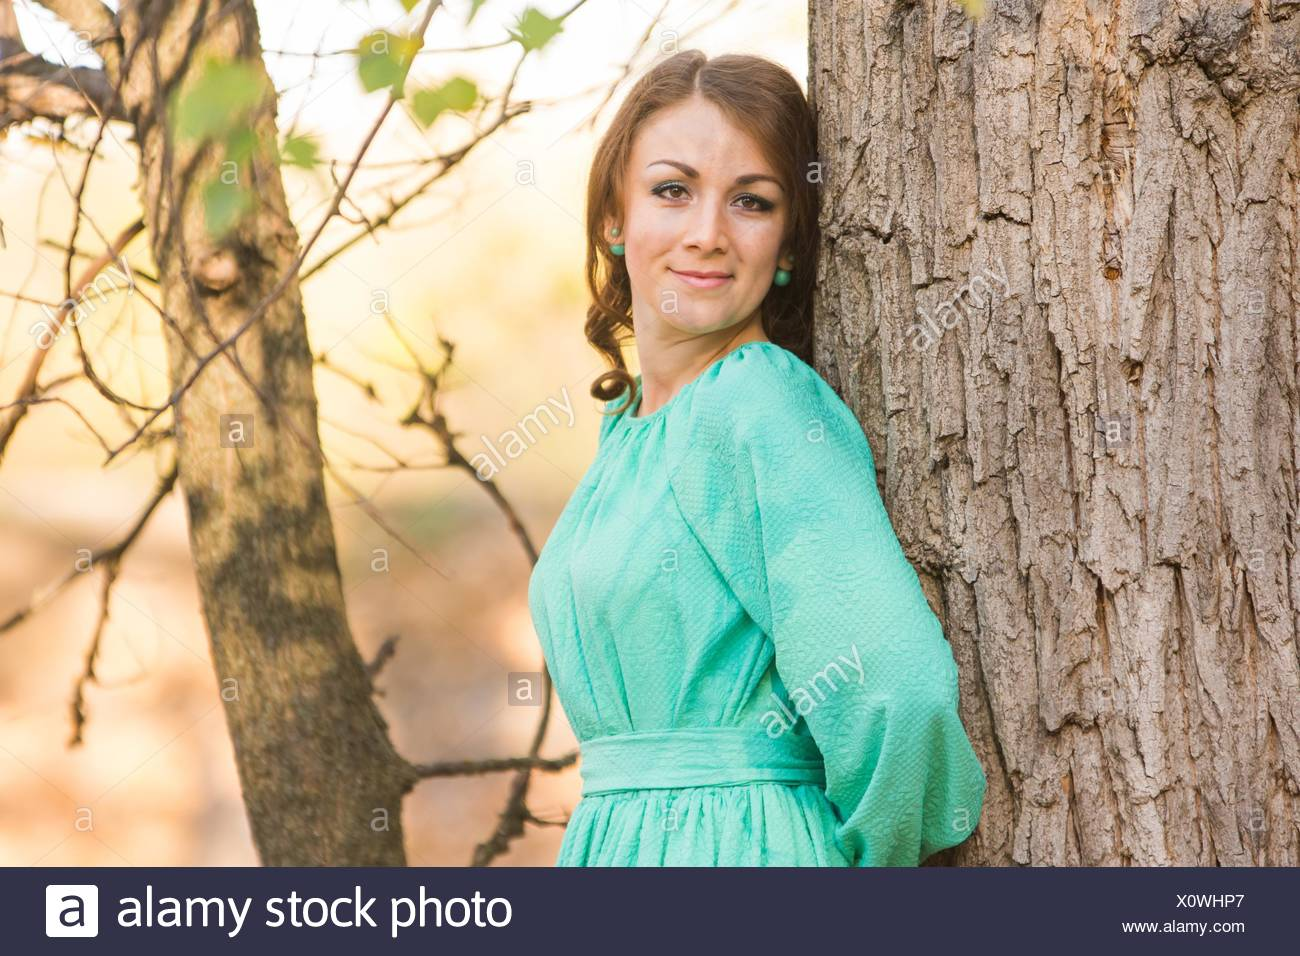 Young beautiful girl in a long dress walking in the woods on a warm summer day. Stock Photo